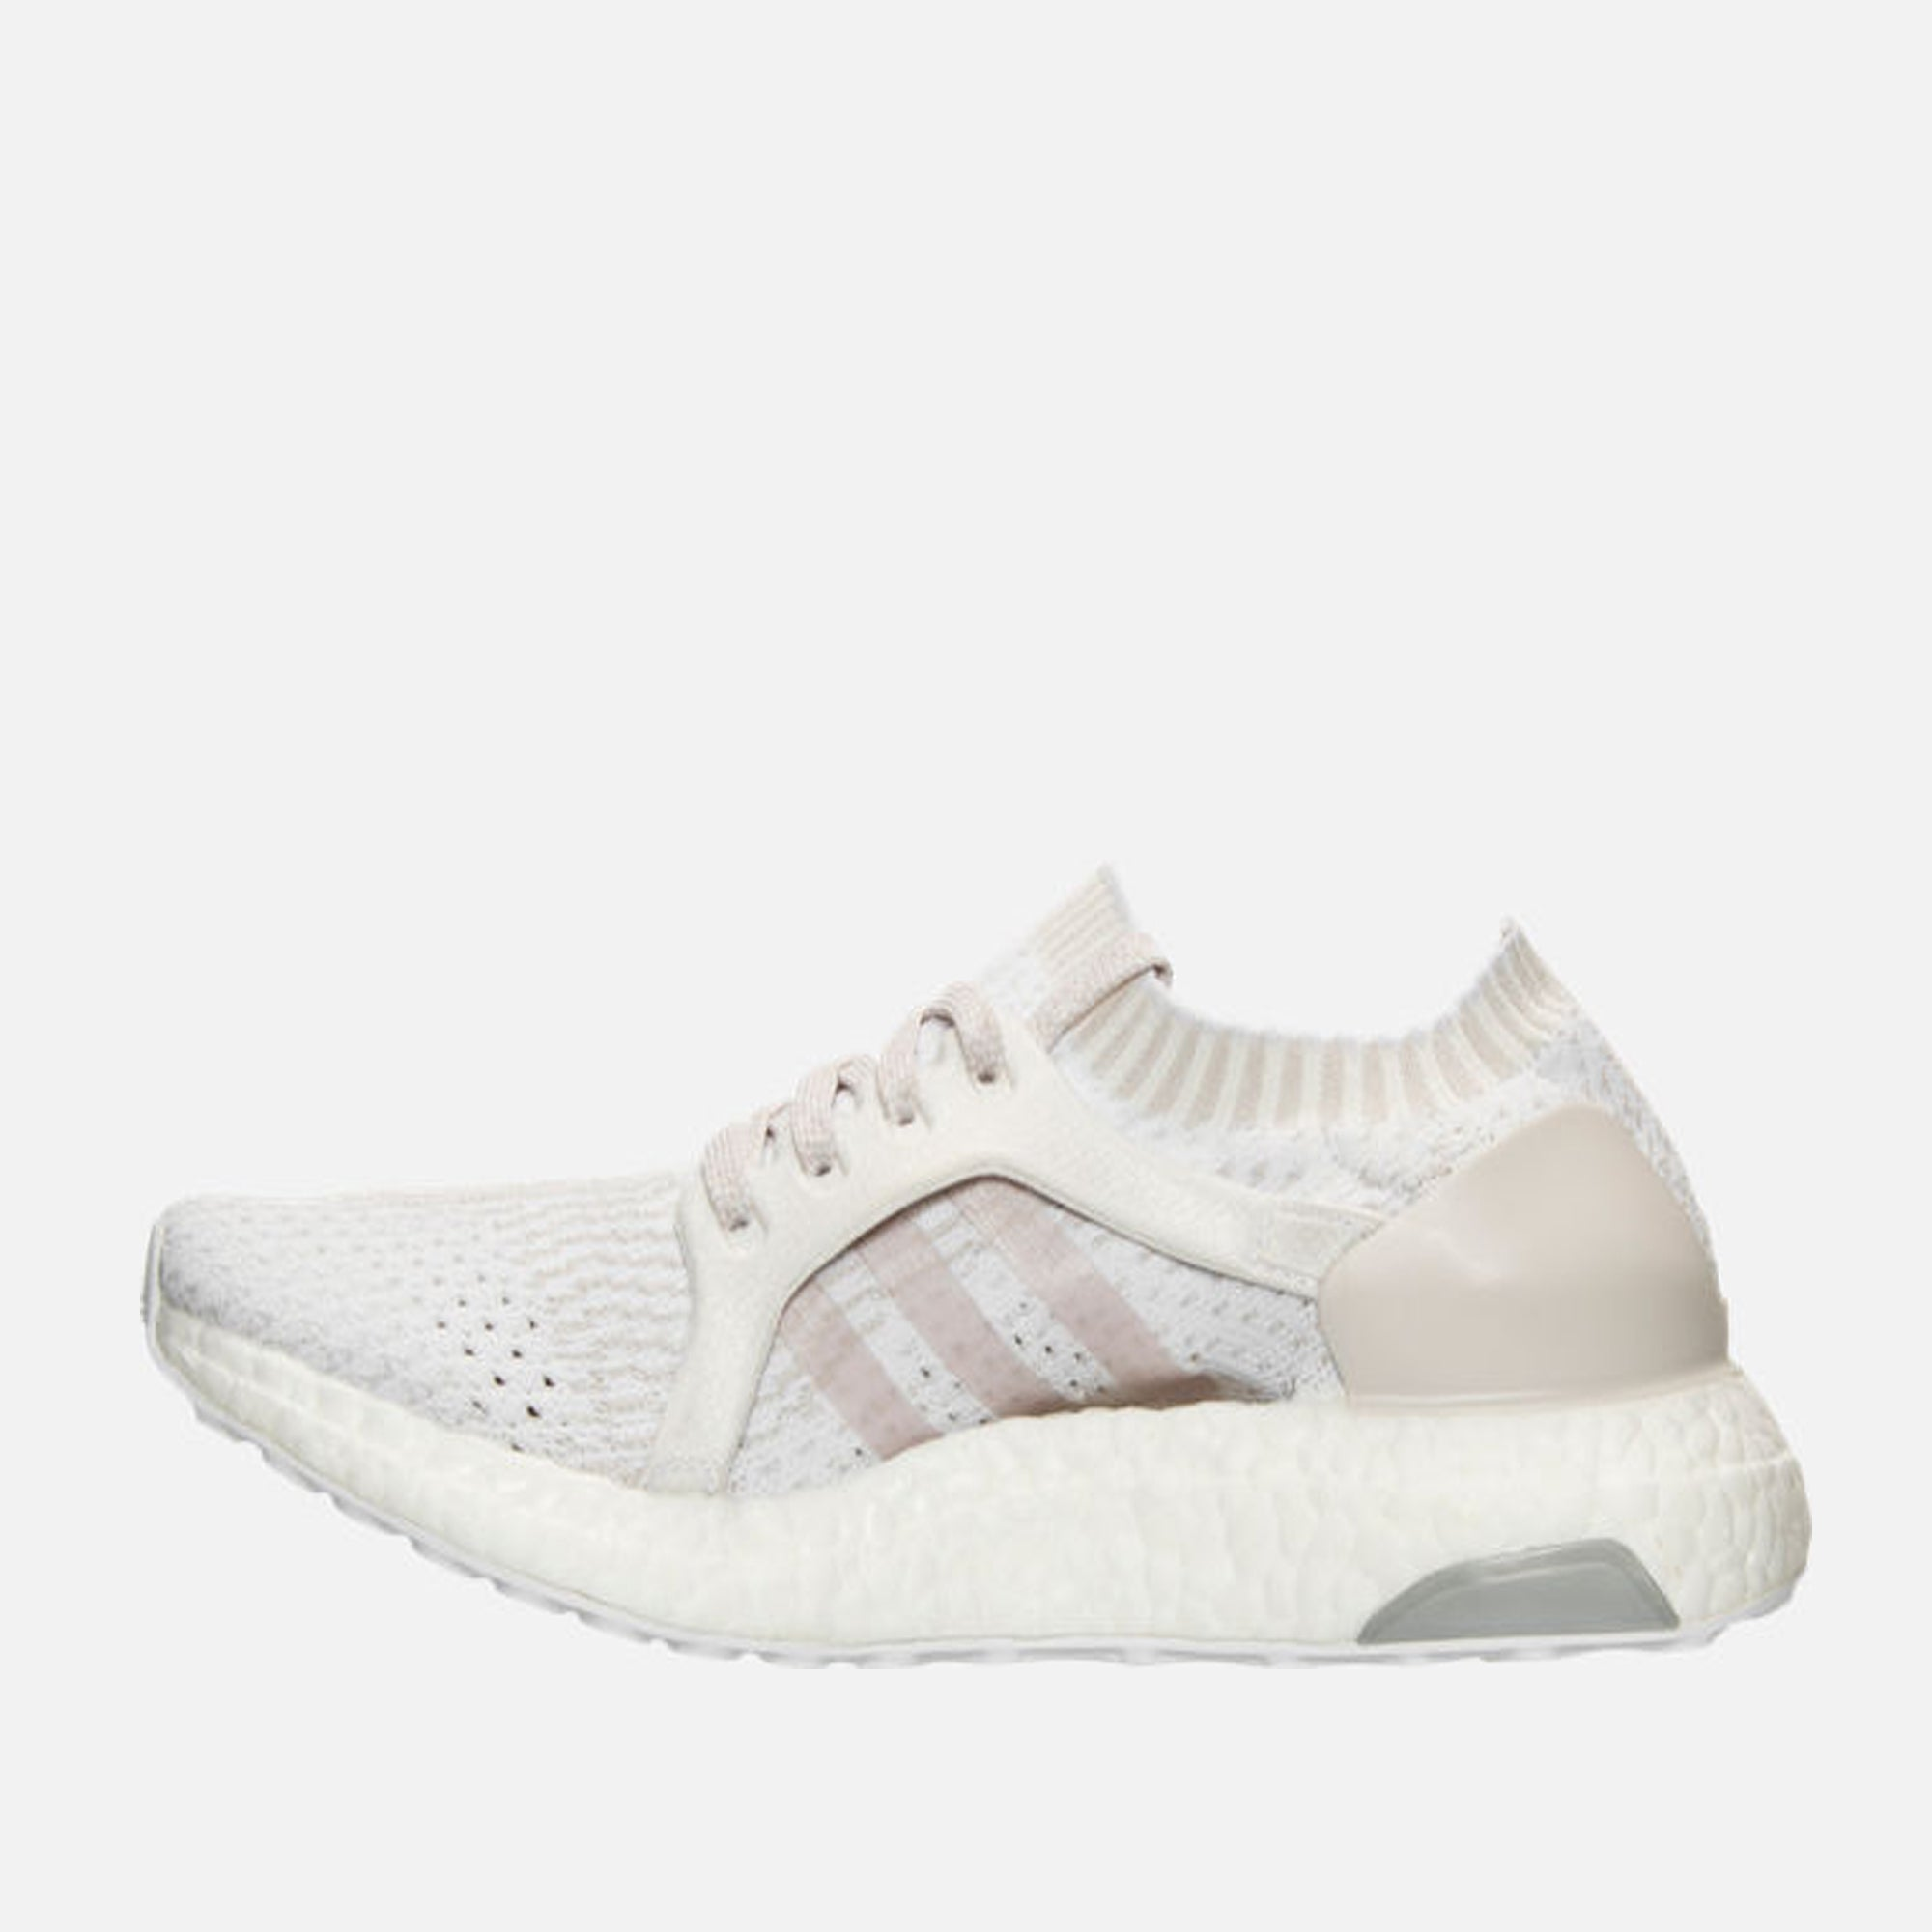 50ad65ed58fe6 Women s Adidas Ultraboost X Running shoes Crystal White Pearl Grey White -